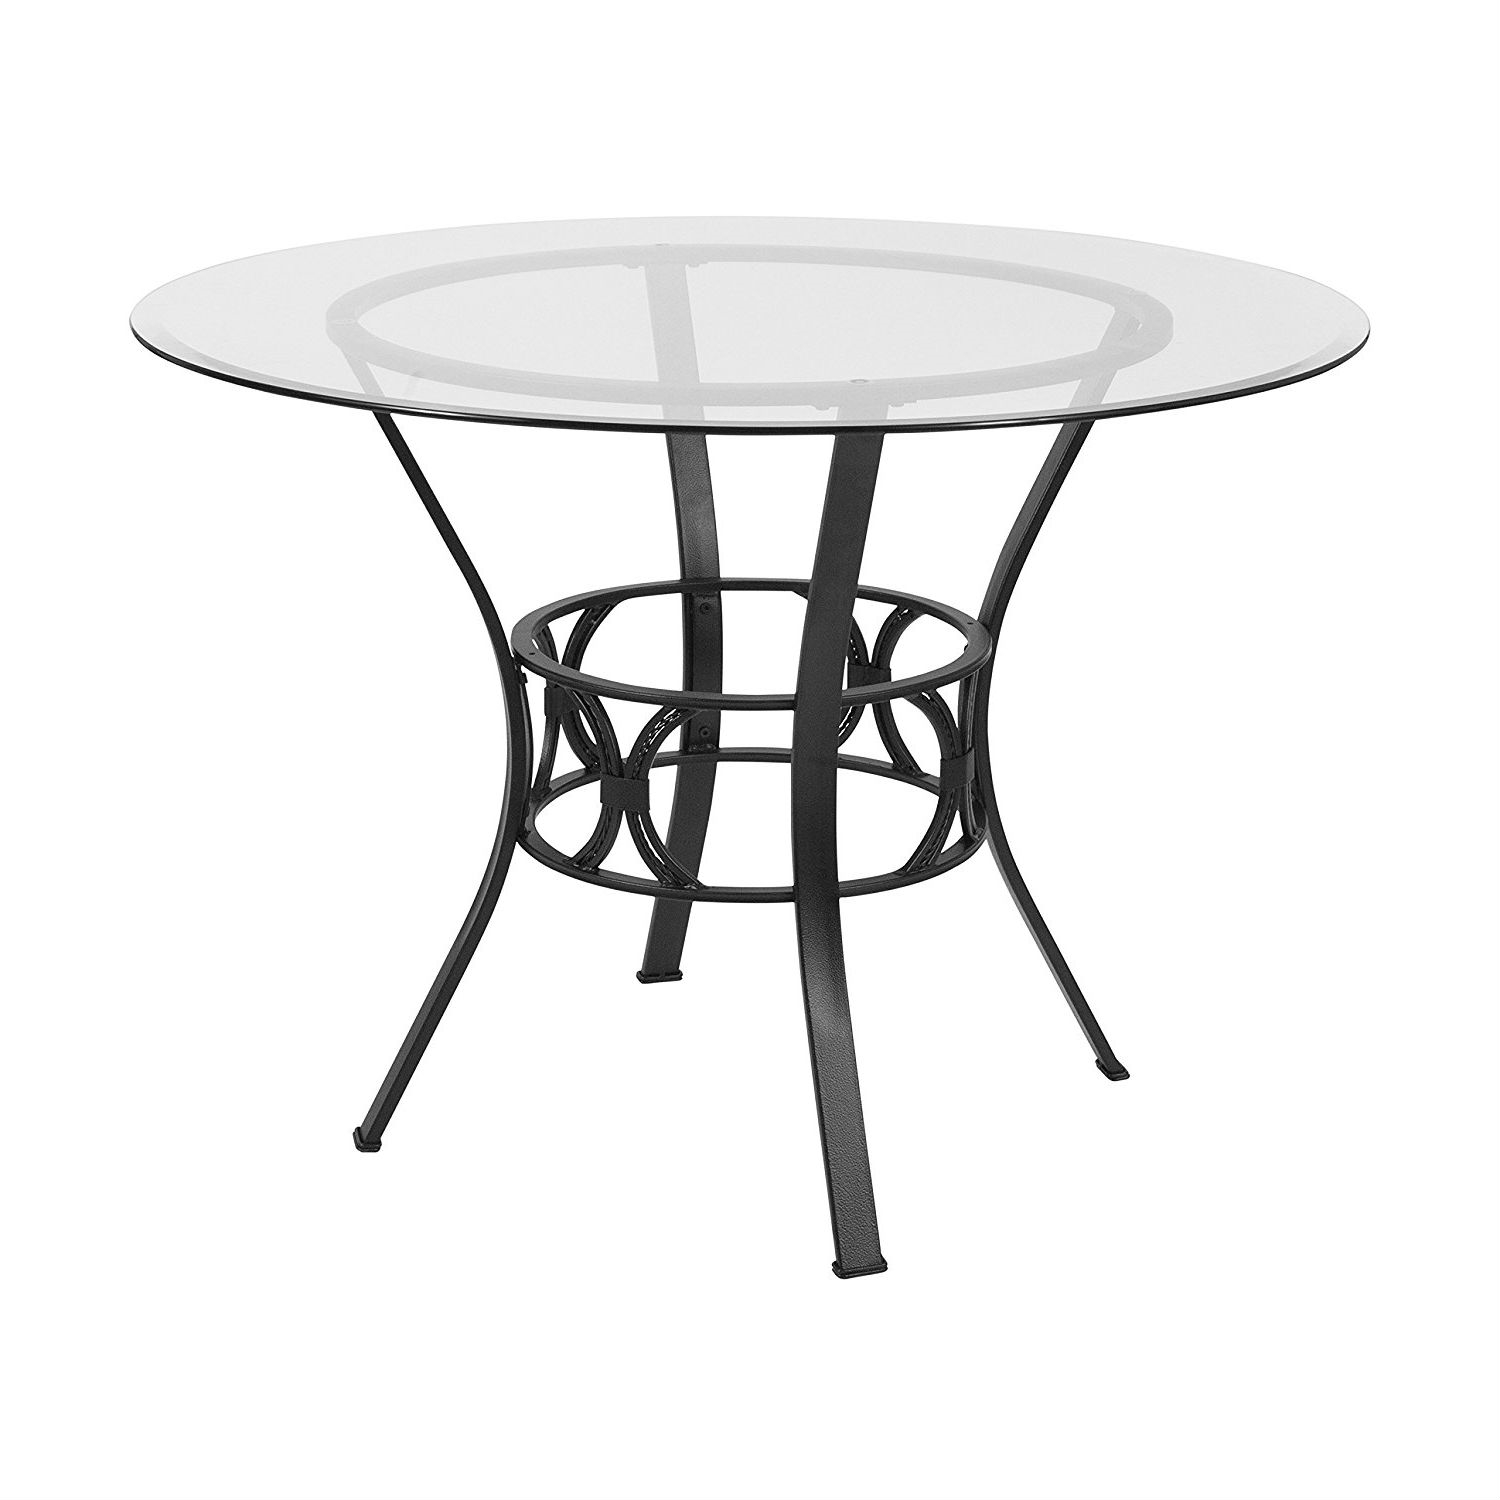 Round 42-inch Glass Dining Table with Metal Frame in Black Finish ...